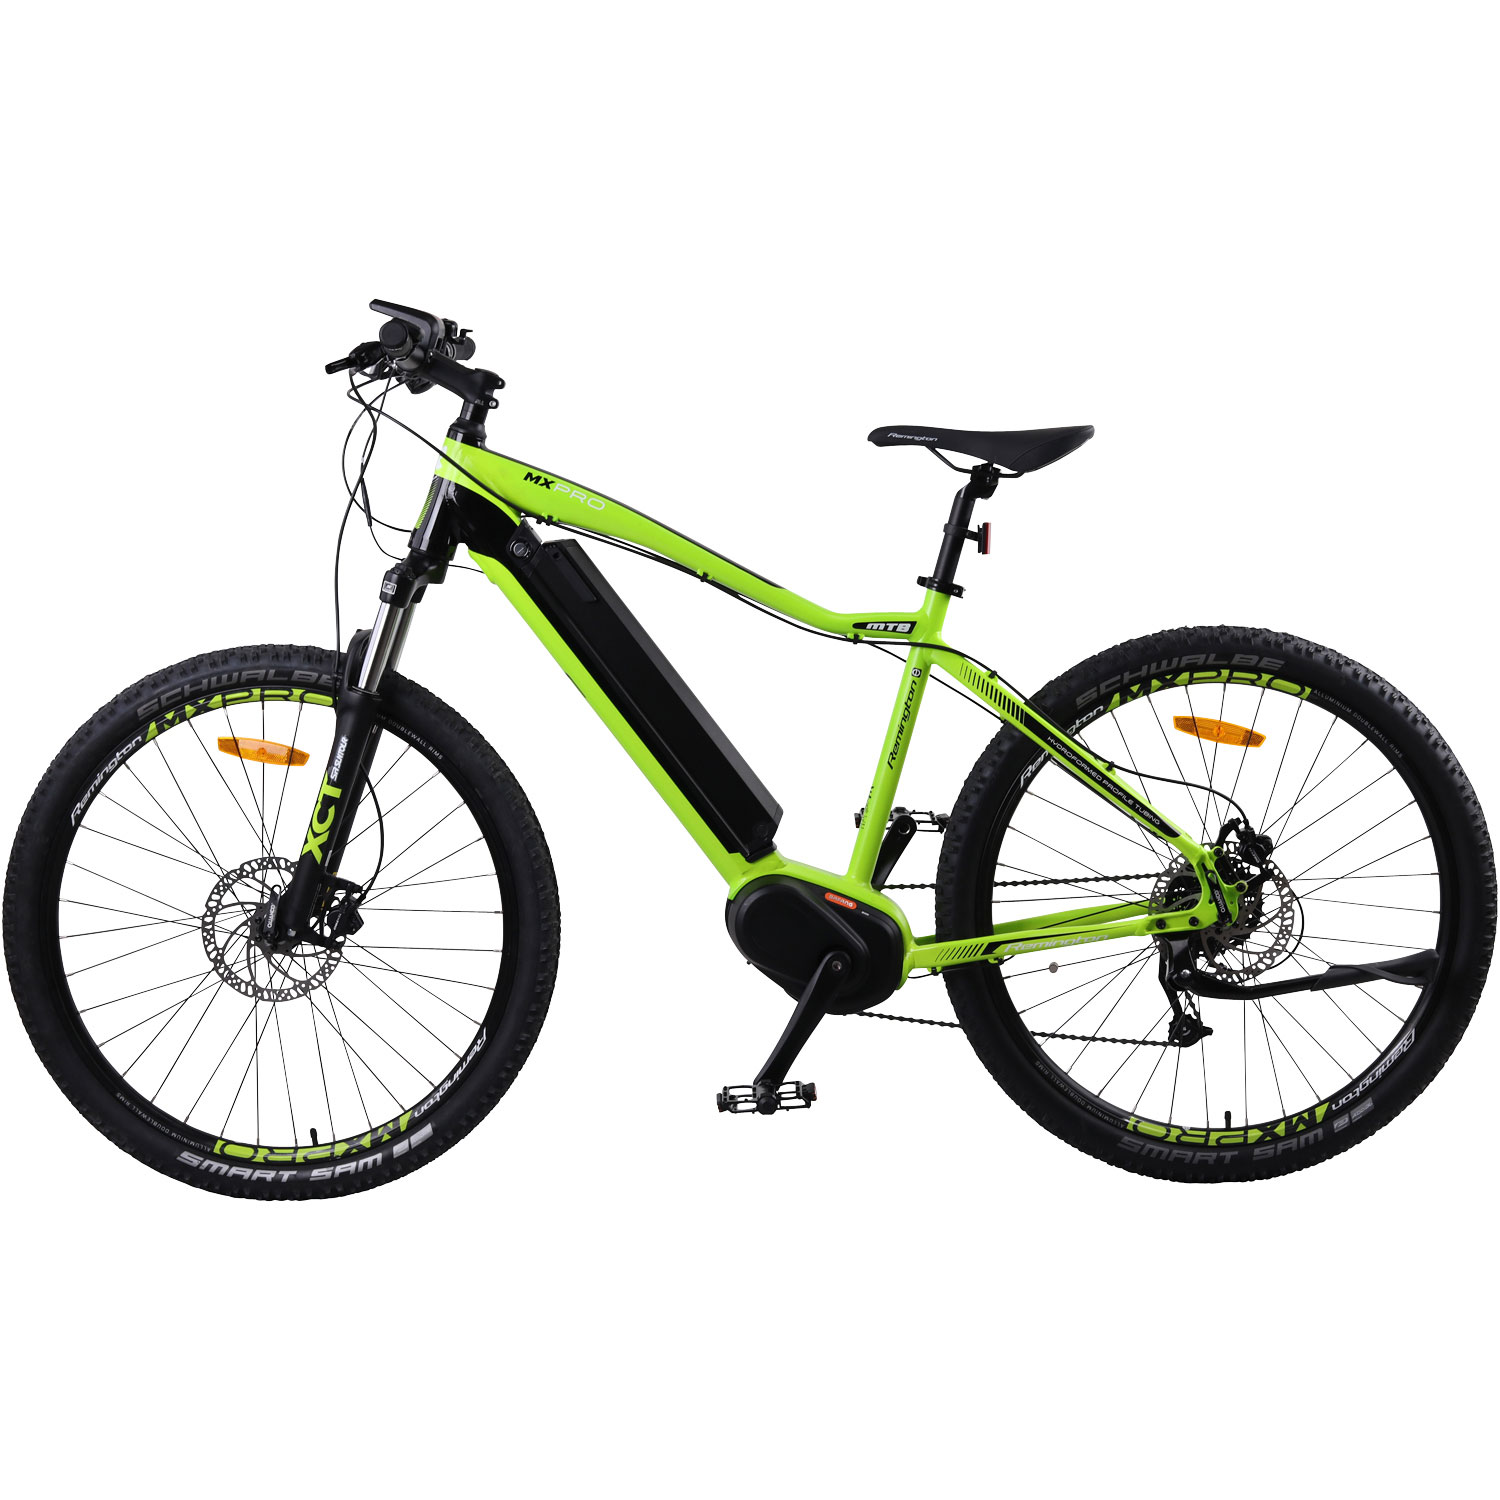 e mountainbike 27 5 zoll 650b remington mx pro mtb e bike. Black Bedroom Furniture Sets. Home Design Ideas